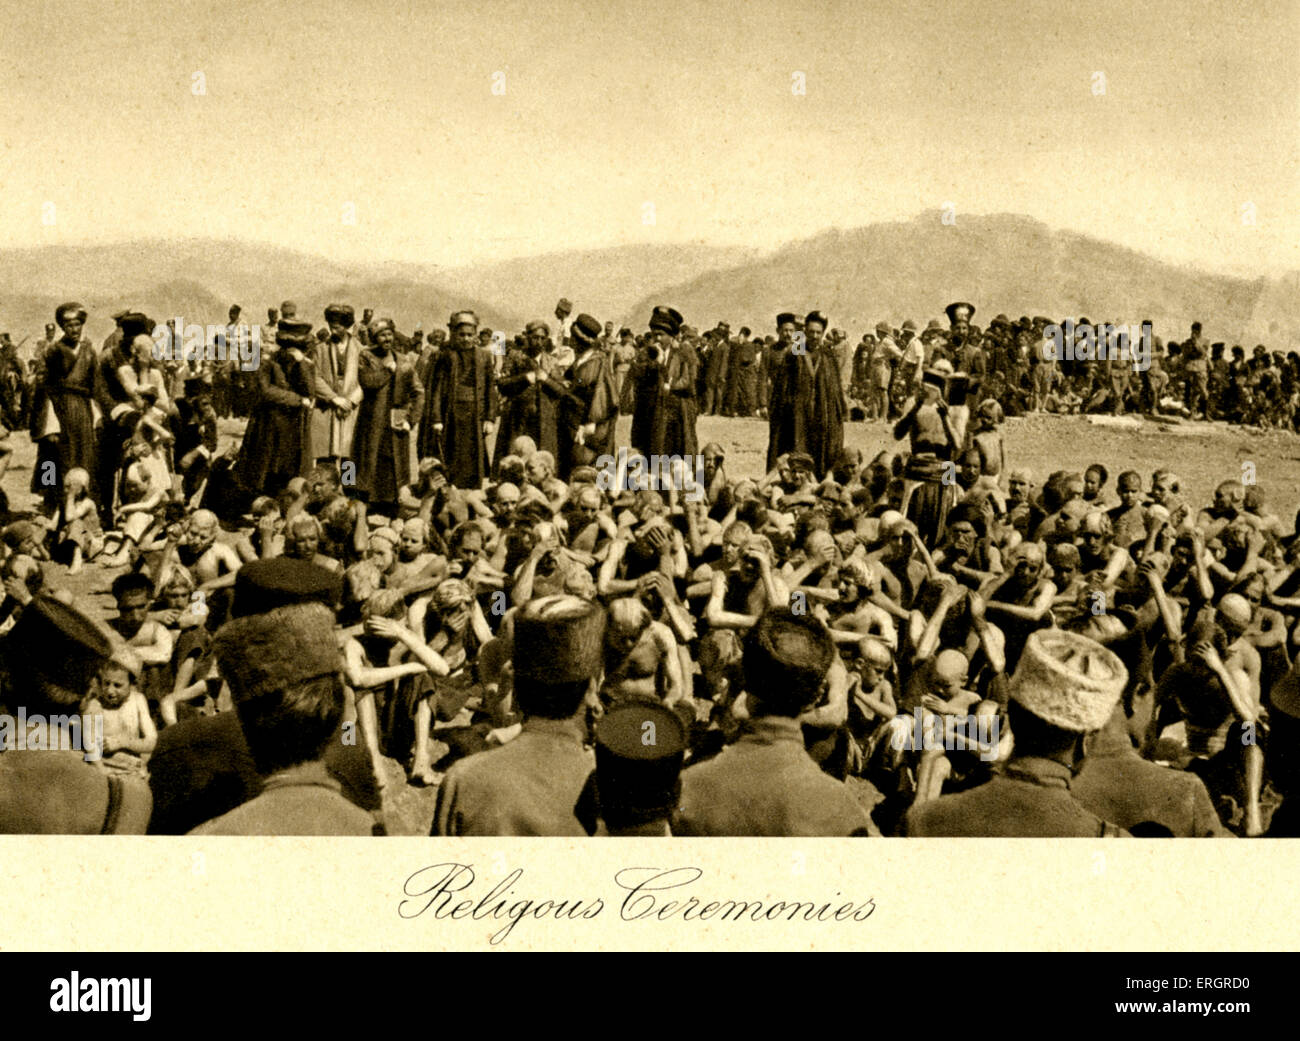 Iraq - Religious ceremonies. Photo taken in 1920s after creation of Iraq ( from Baghdad, Camera Studio Iraq, A Kerim Stock Photo